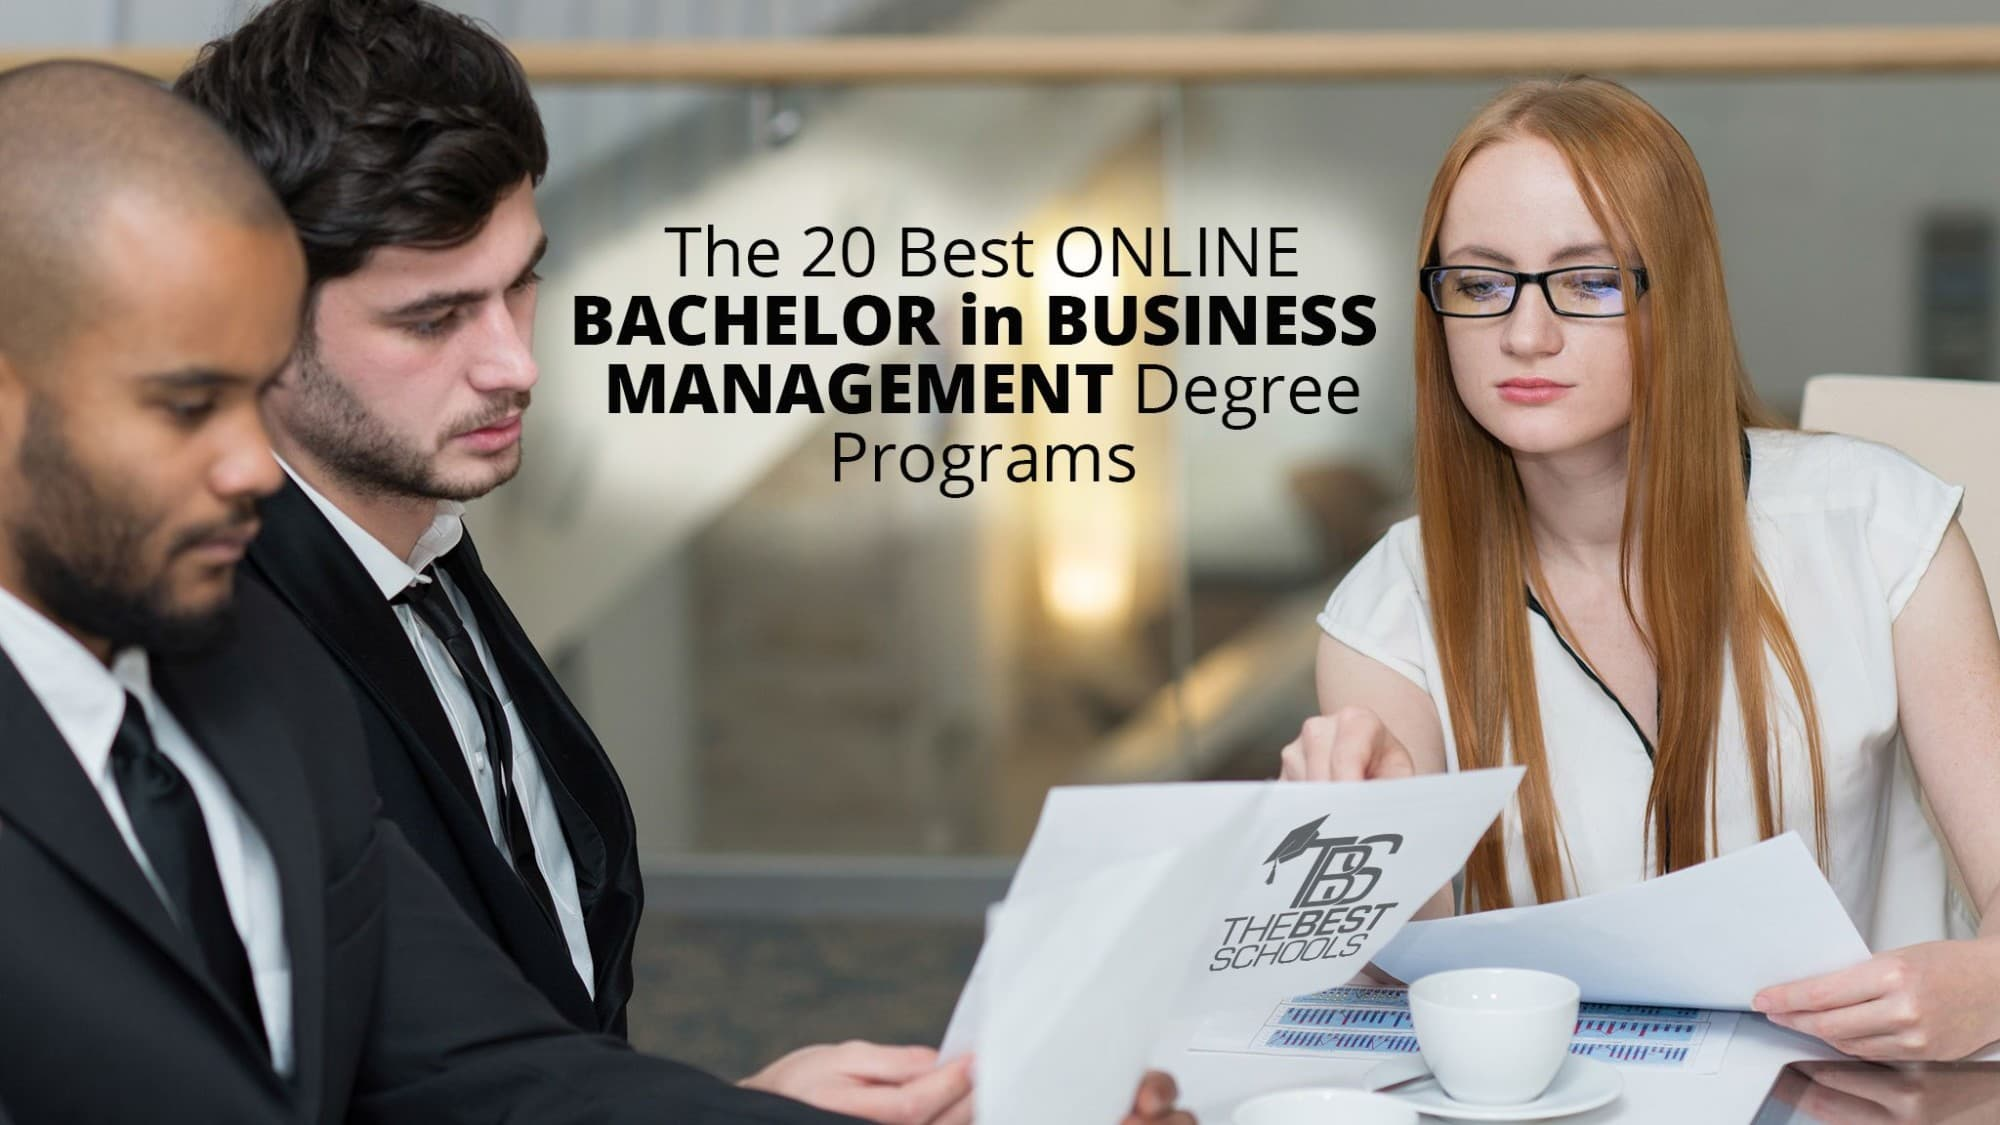 The 20 Best Online Bachelor In Business Management Degree